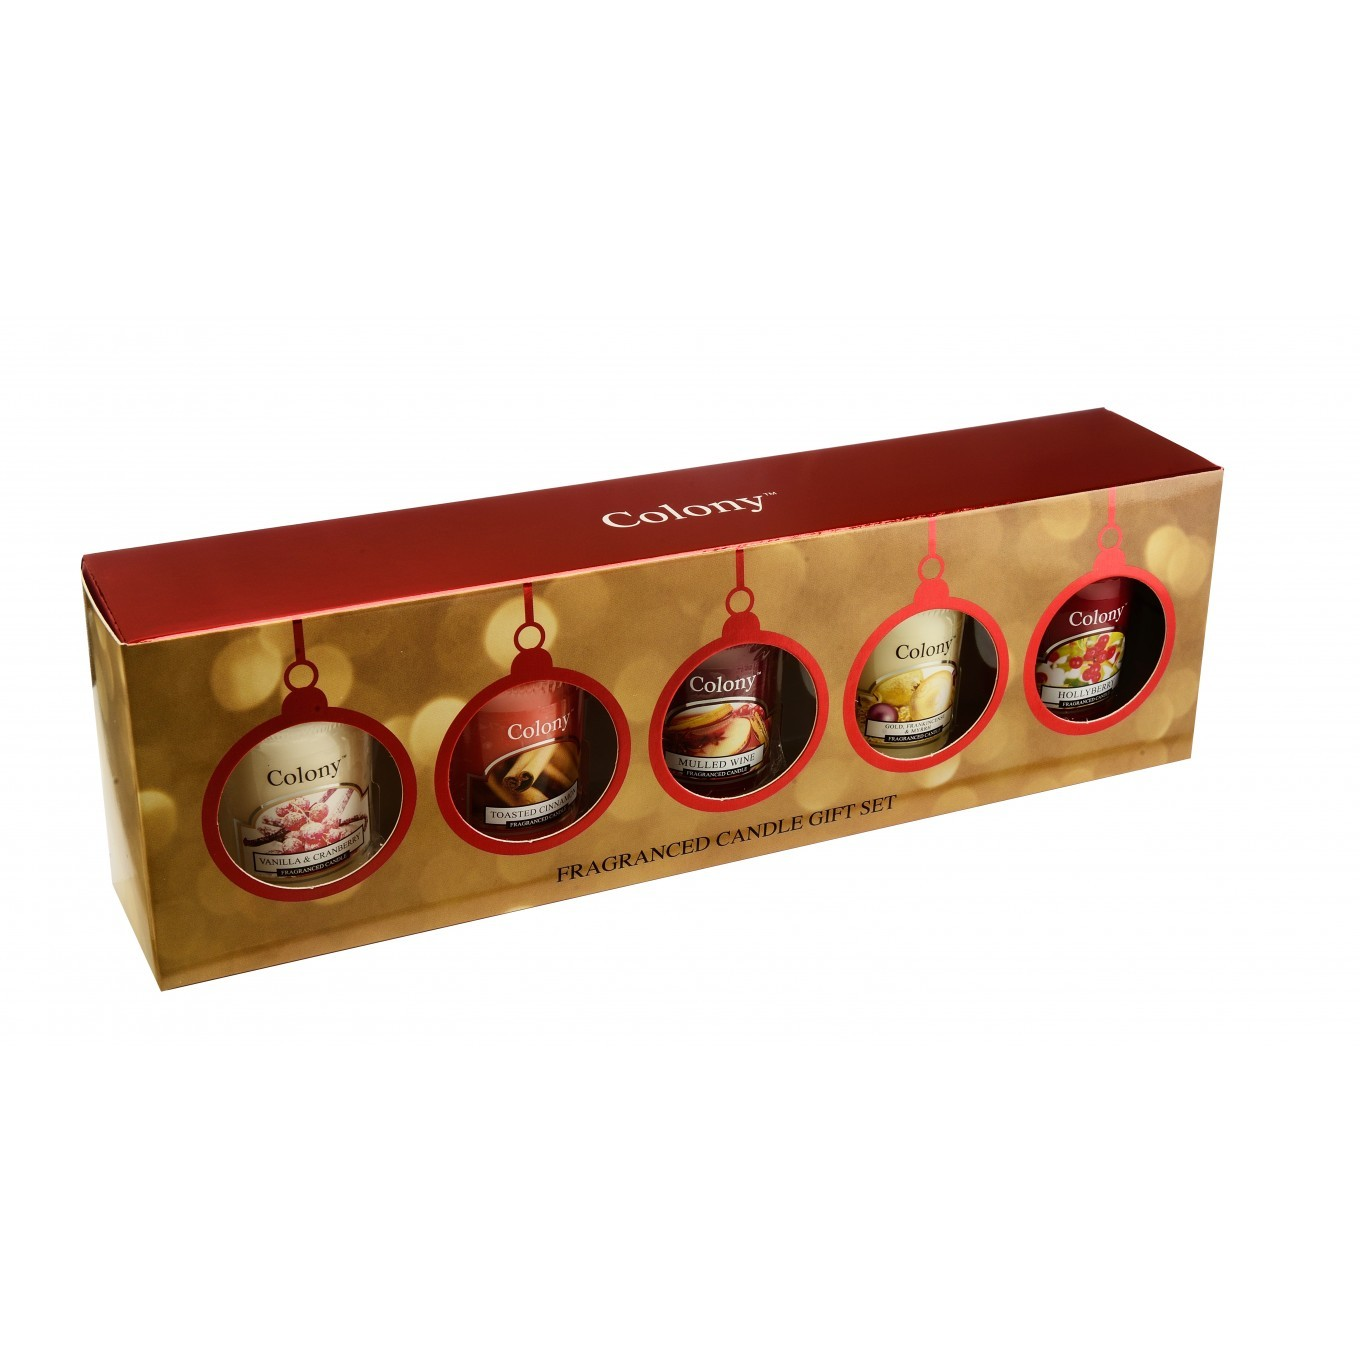 Colony 5 Christmas Fragranced Votive Gift Set